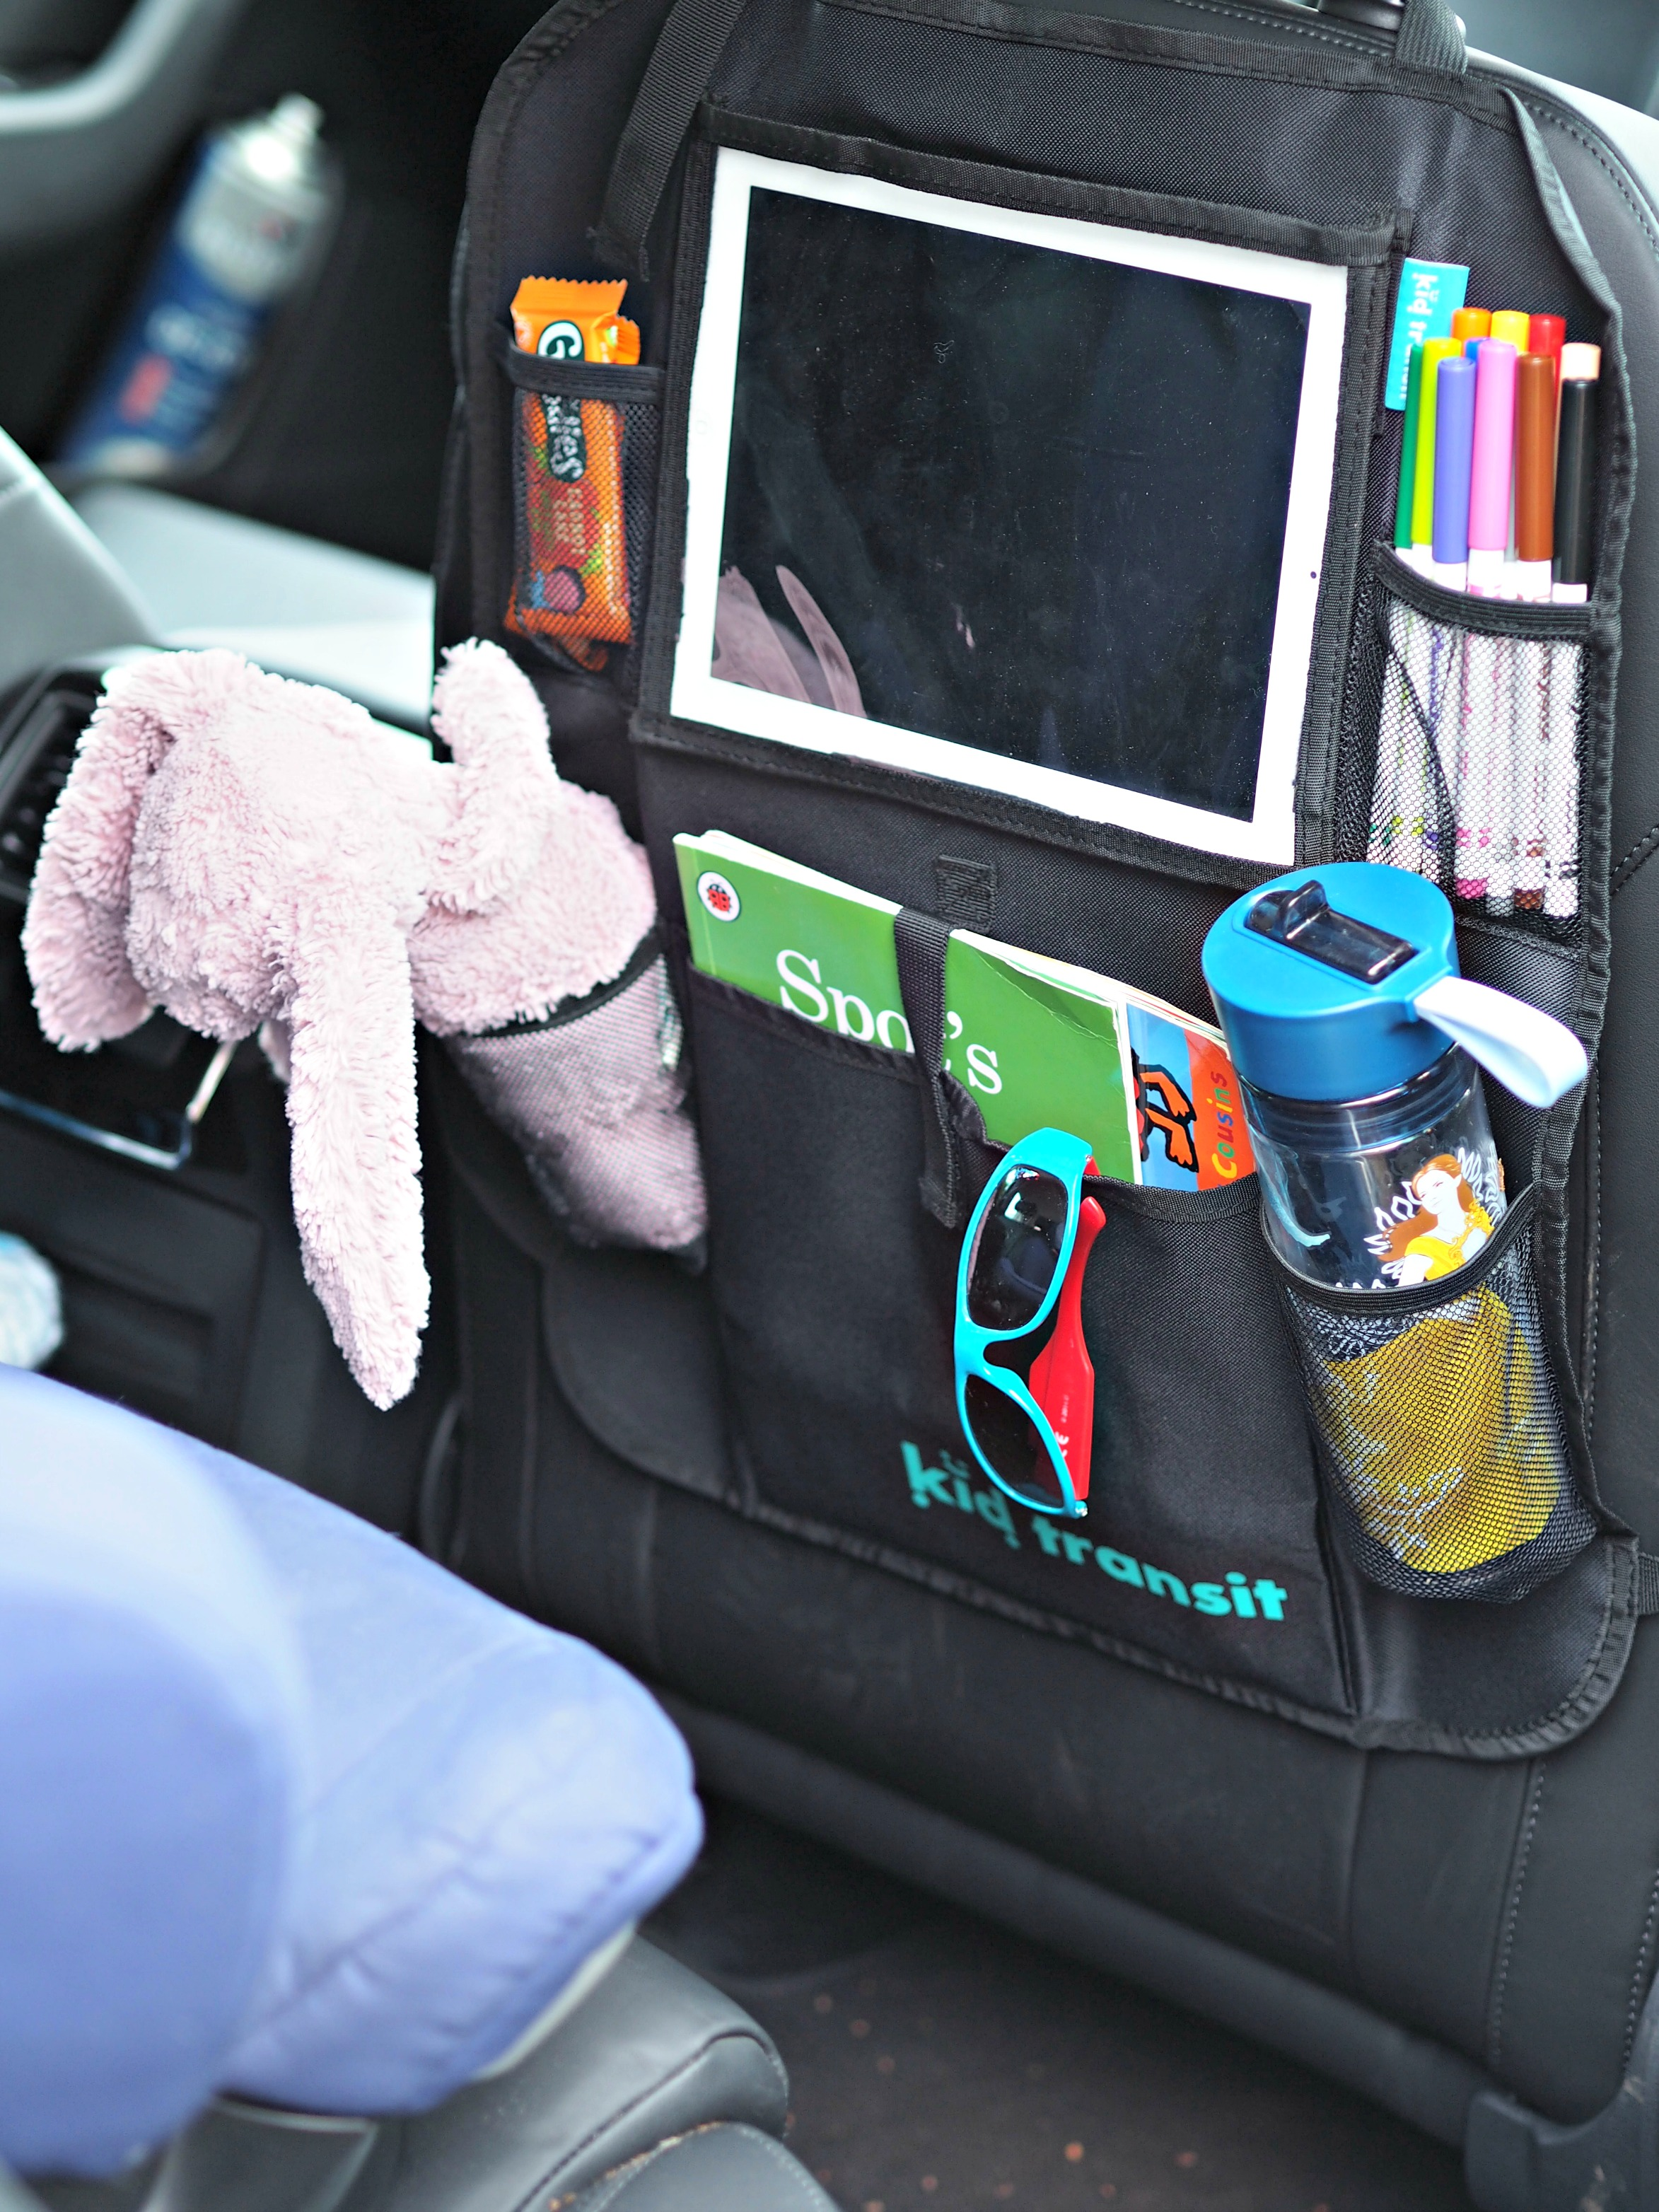 Kid Transit Car Organiser with iPad Holder - with items in